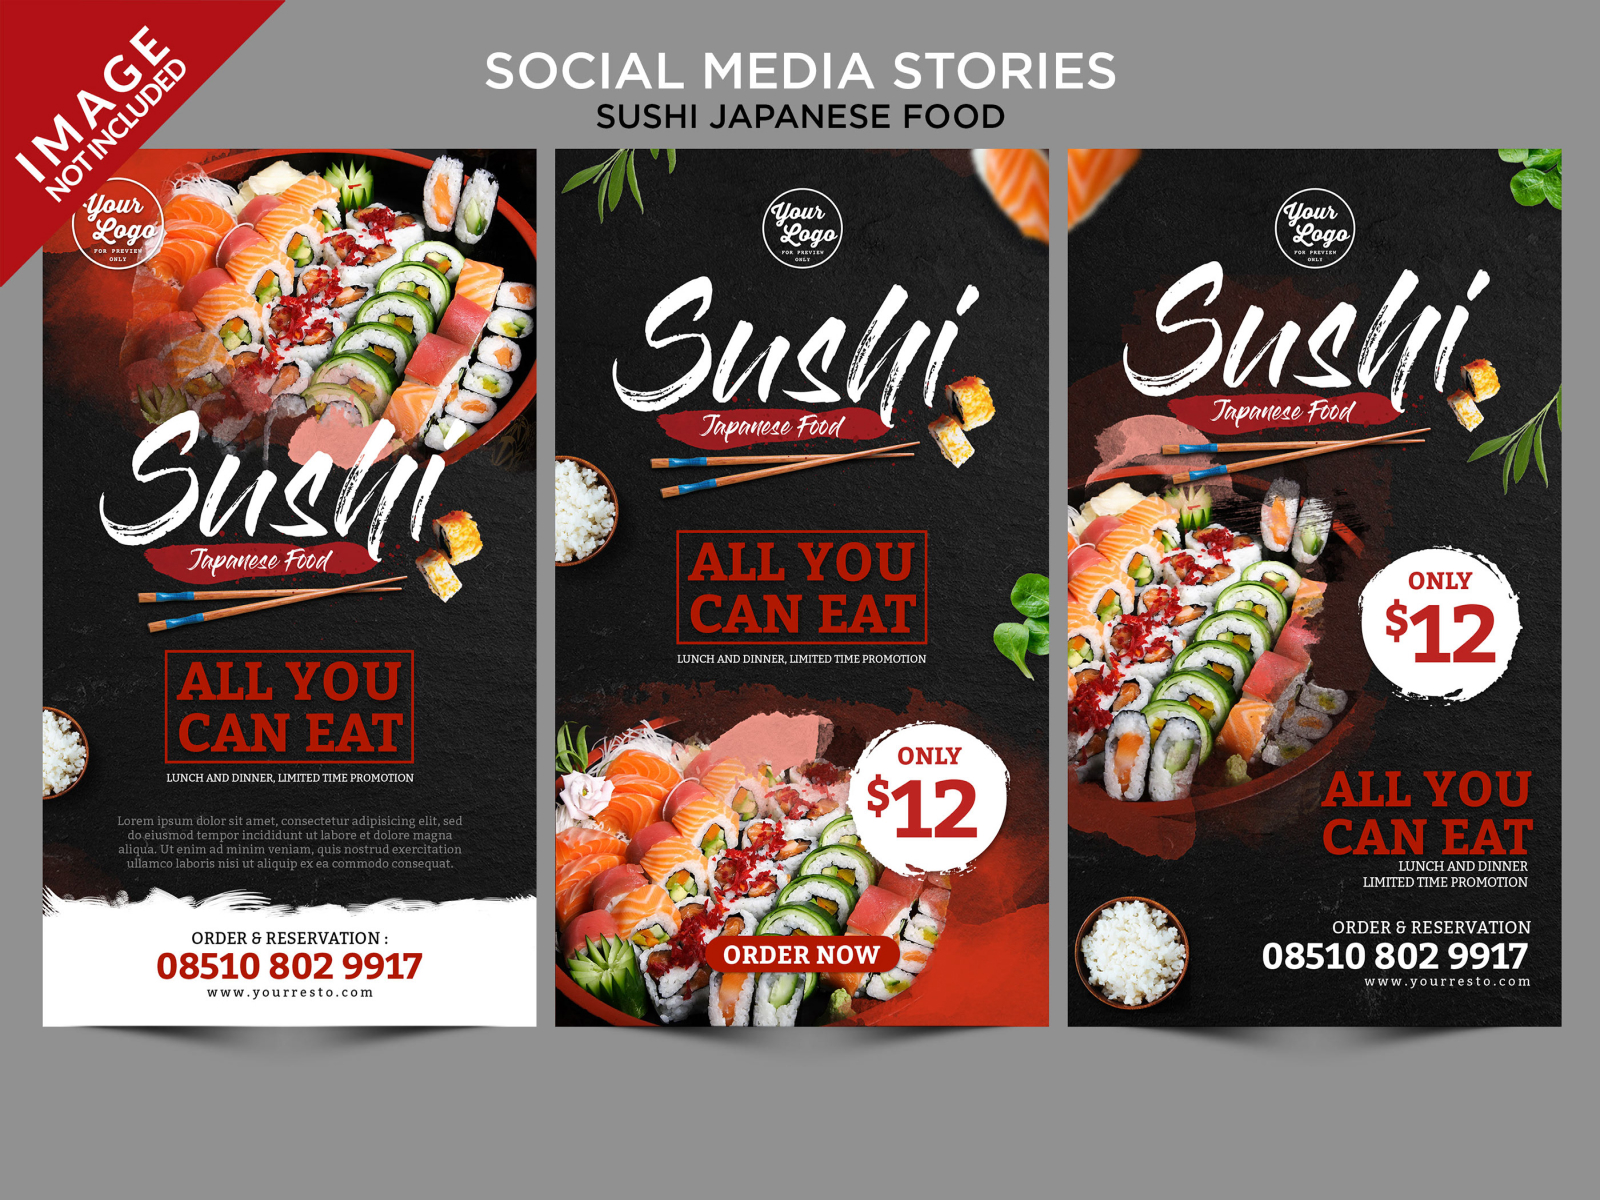 Sushi Japanese Food Social Media Stories cover image